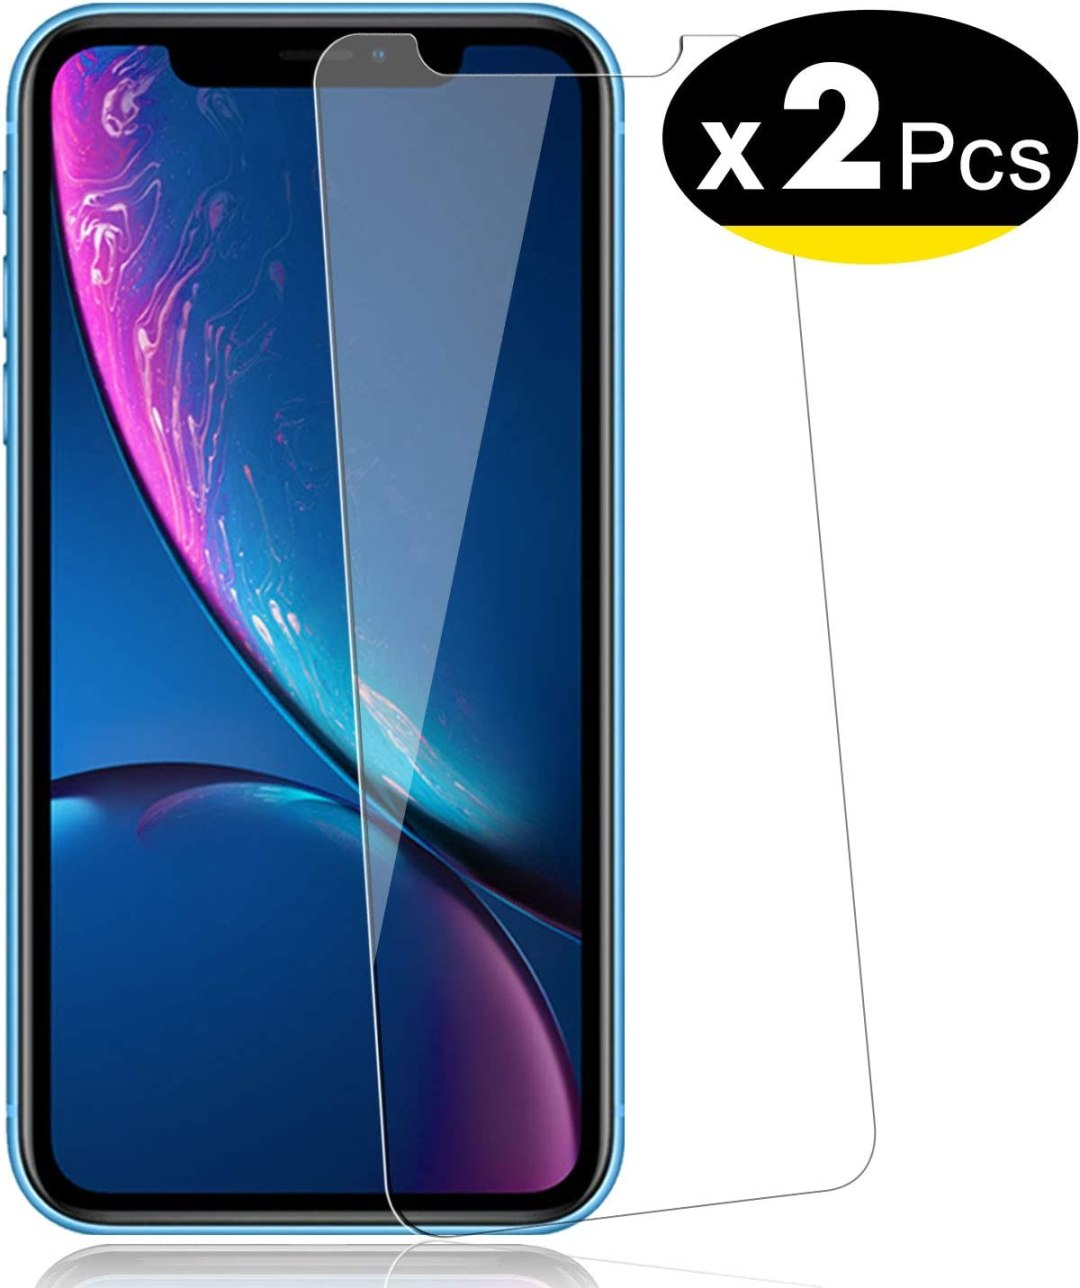 "NEW'C Lot de 2, Verre Trempé pour iPhone 11, iPhone XR (6.1""), Film Protection écran - Anti Rayures - sans Bulles d'air -Ultra Résistant (0,33mm HD Ultra Transparent) Dureté 9H Glass"